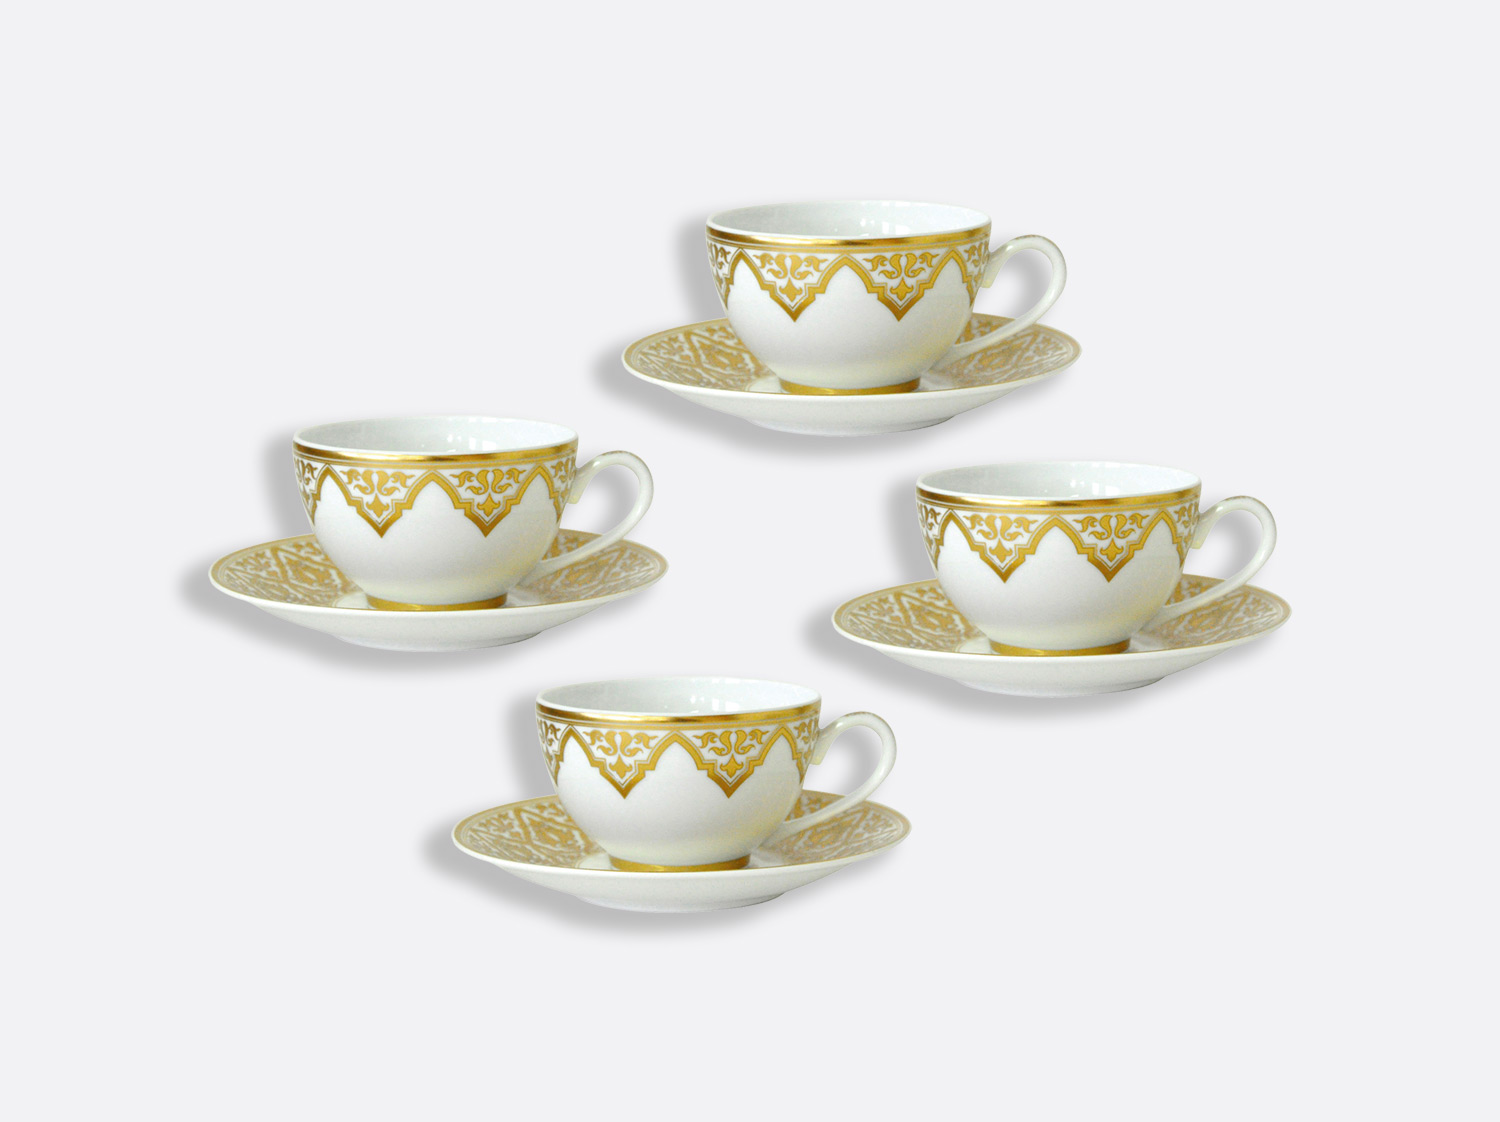 Coffret de tasses & soucoupes thé 13 cl - Coffret de 4 en porcelaine de la collection Venise Bernardaud